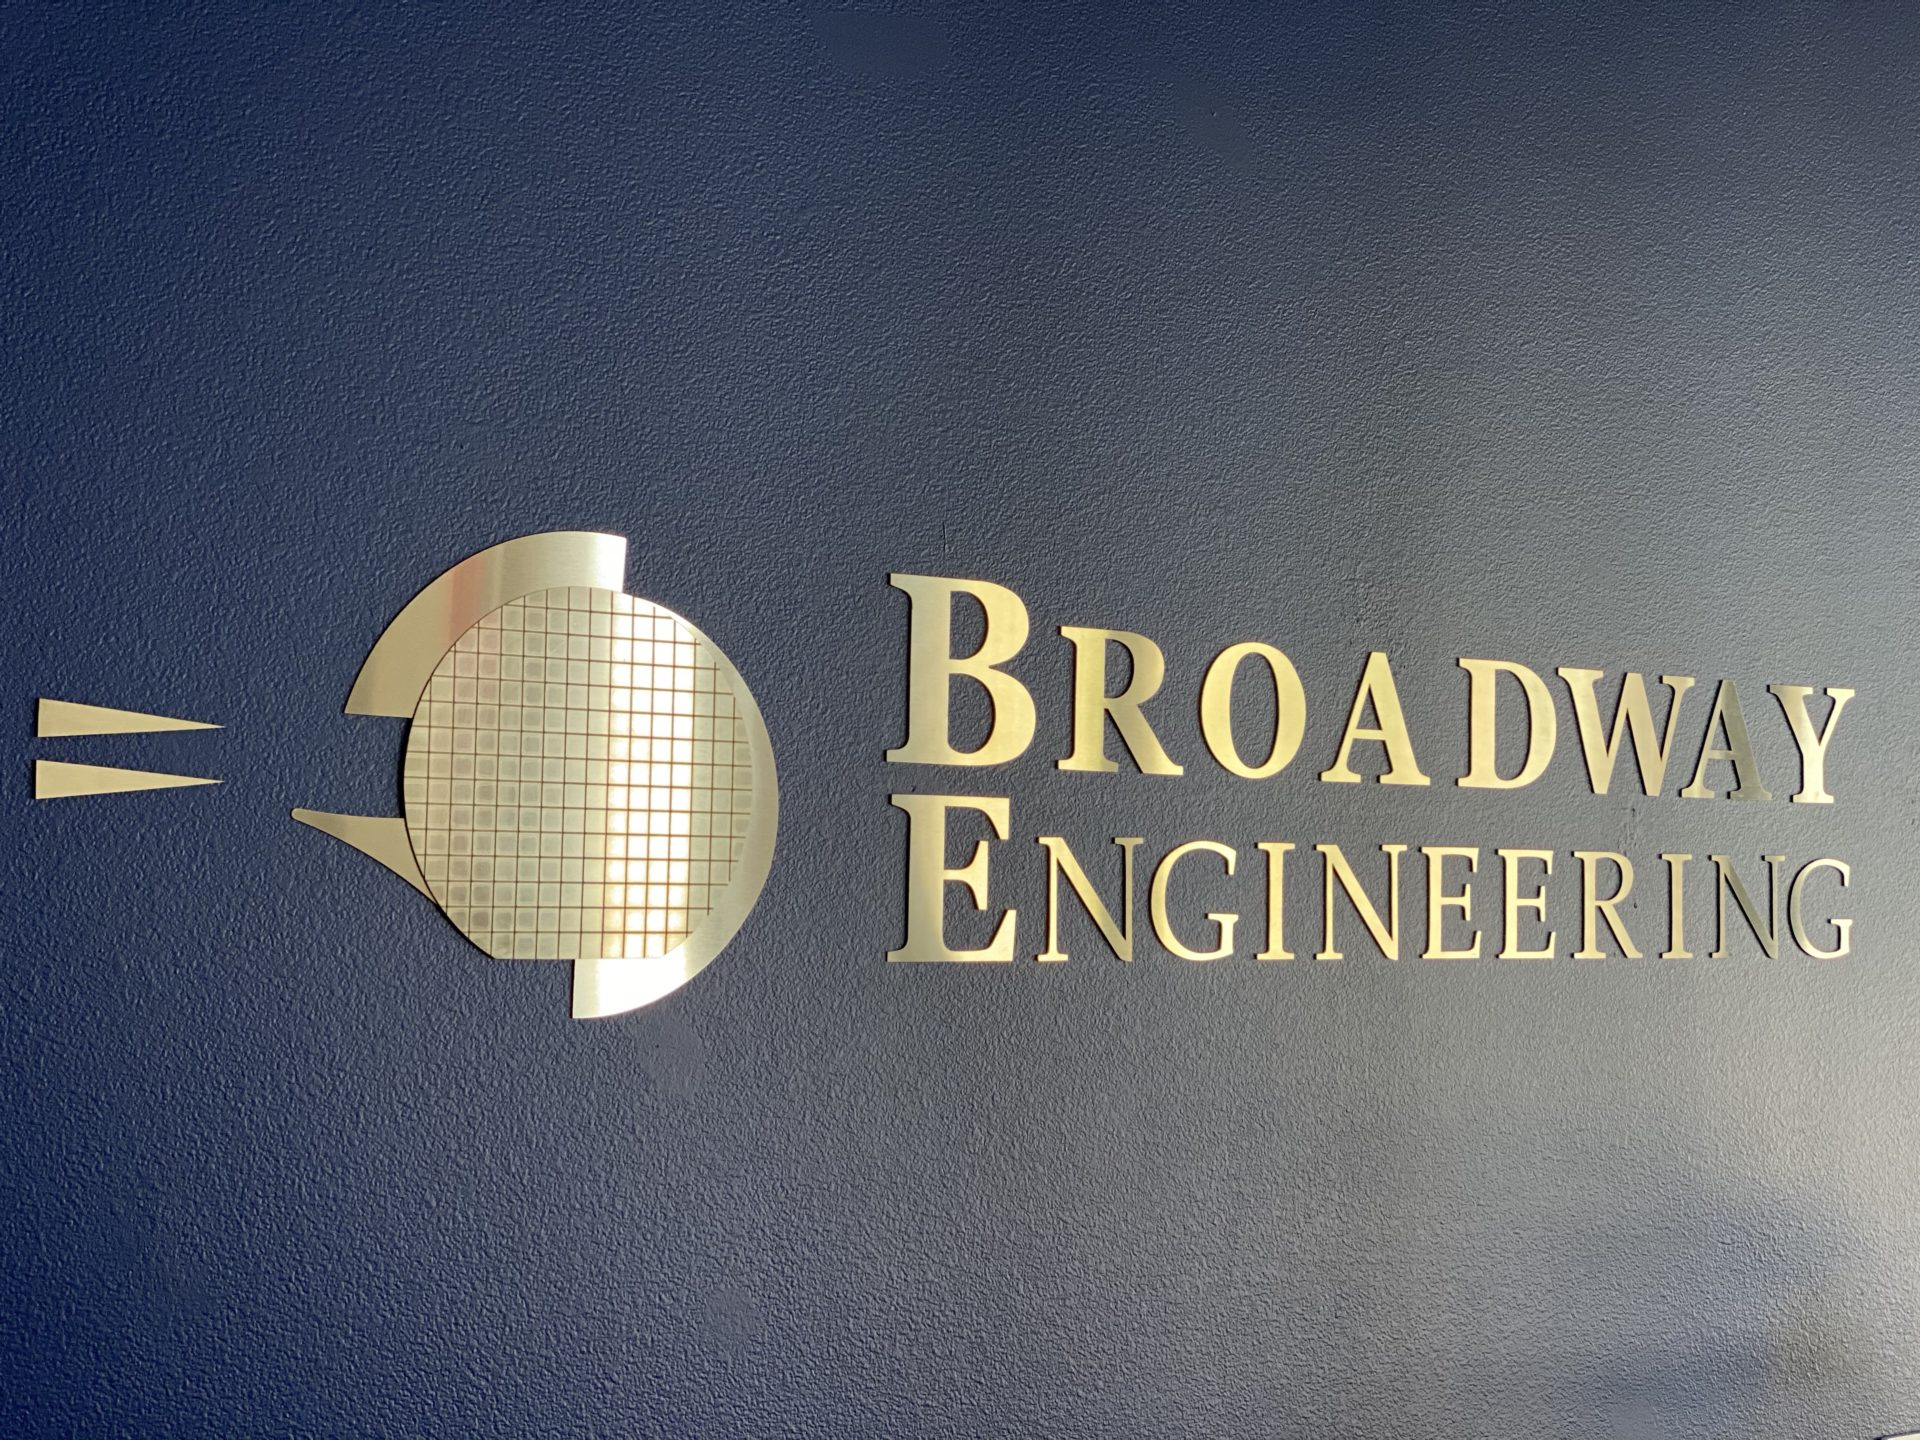 broadway engineering logo